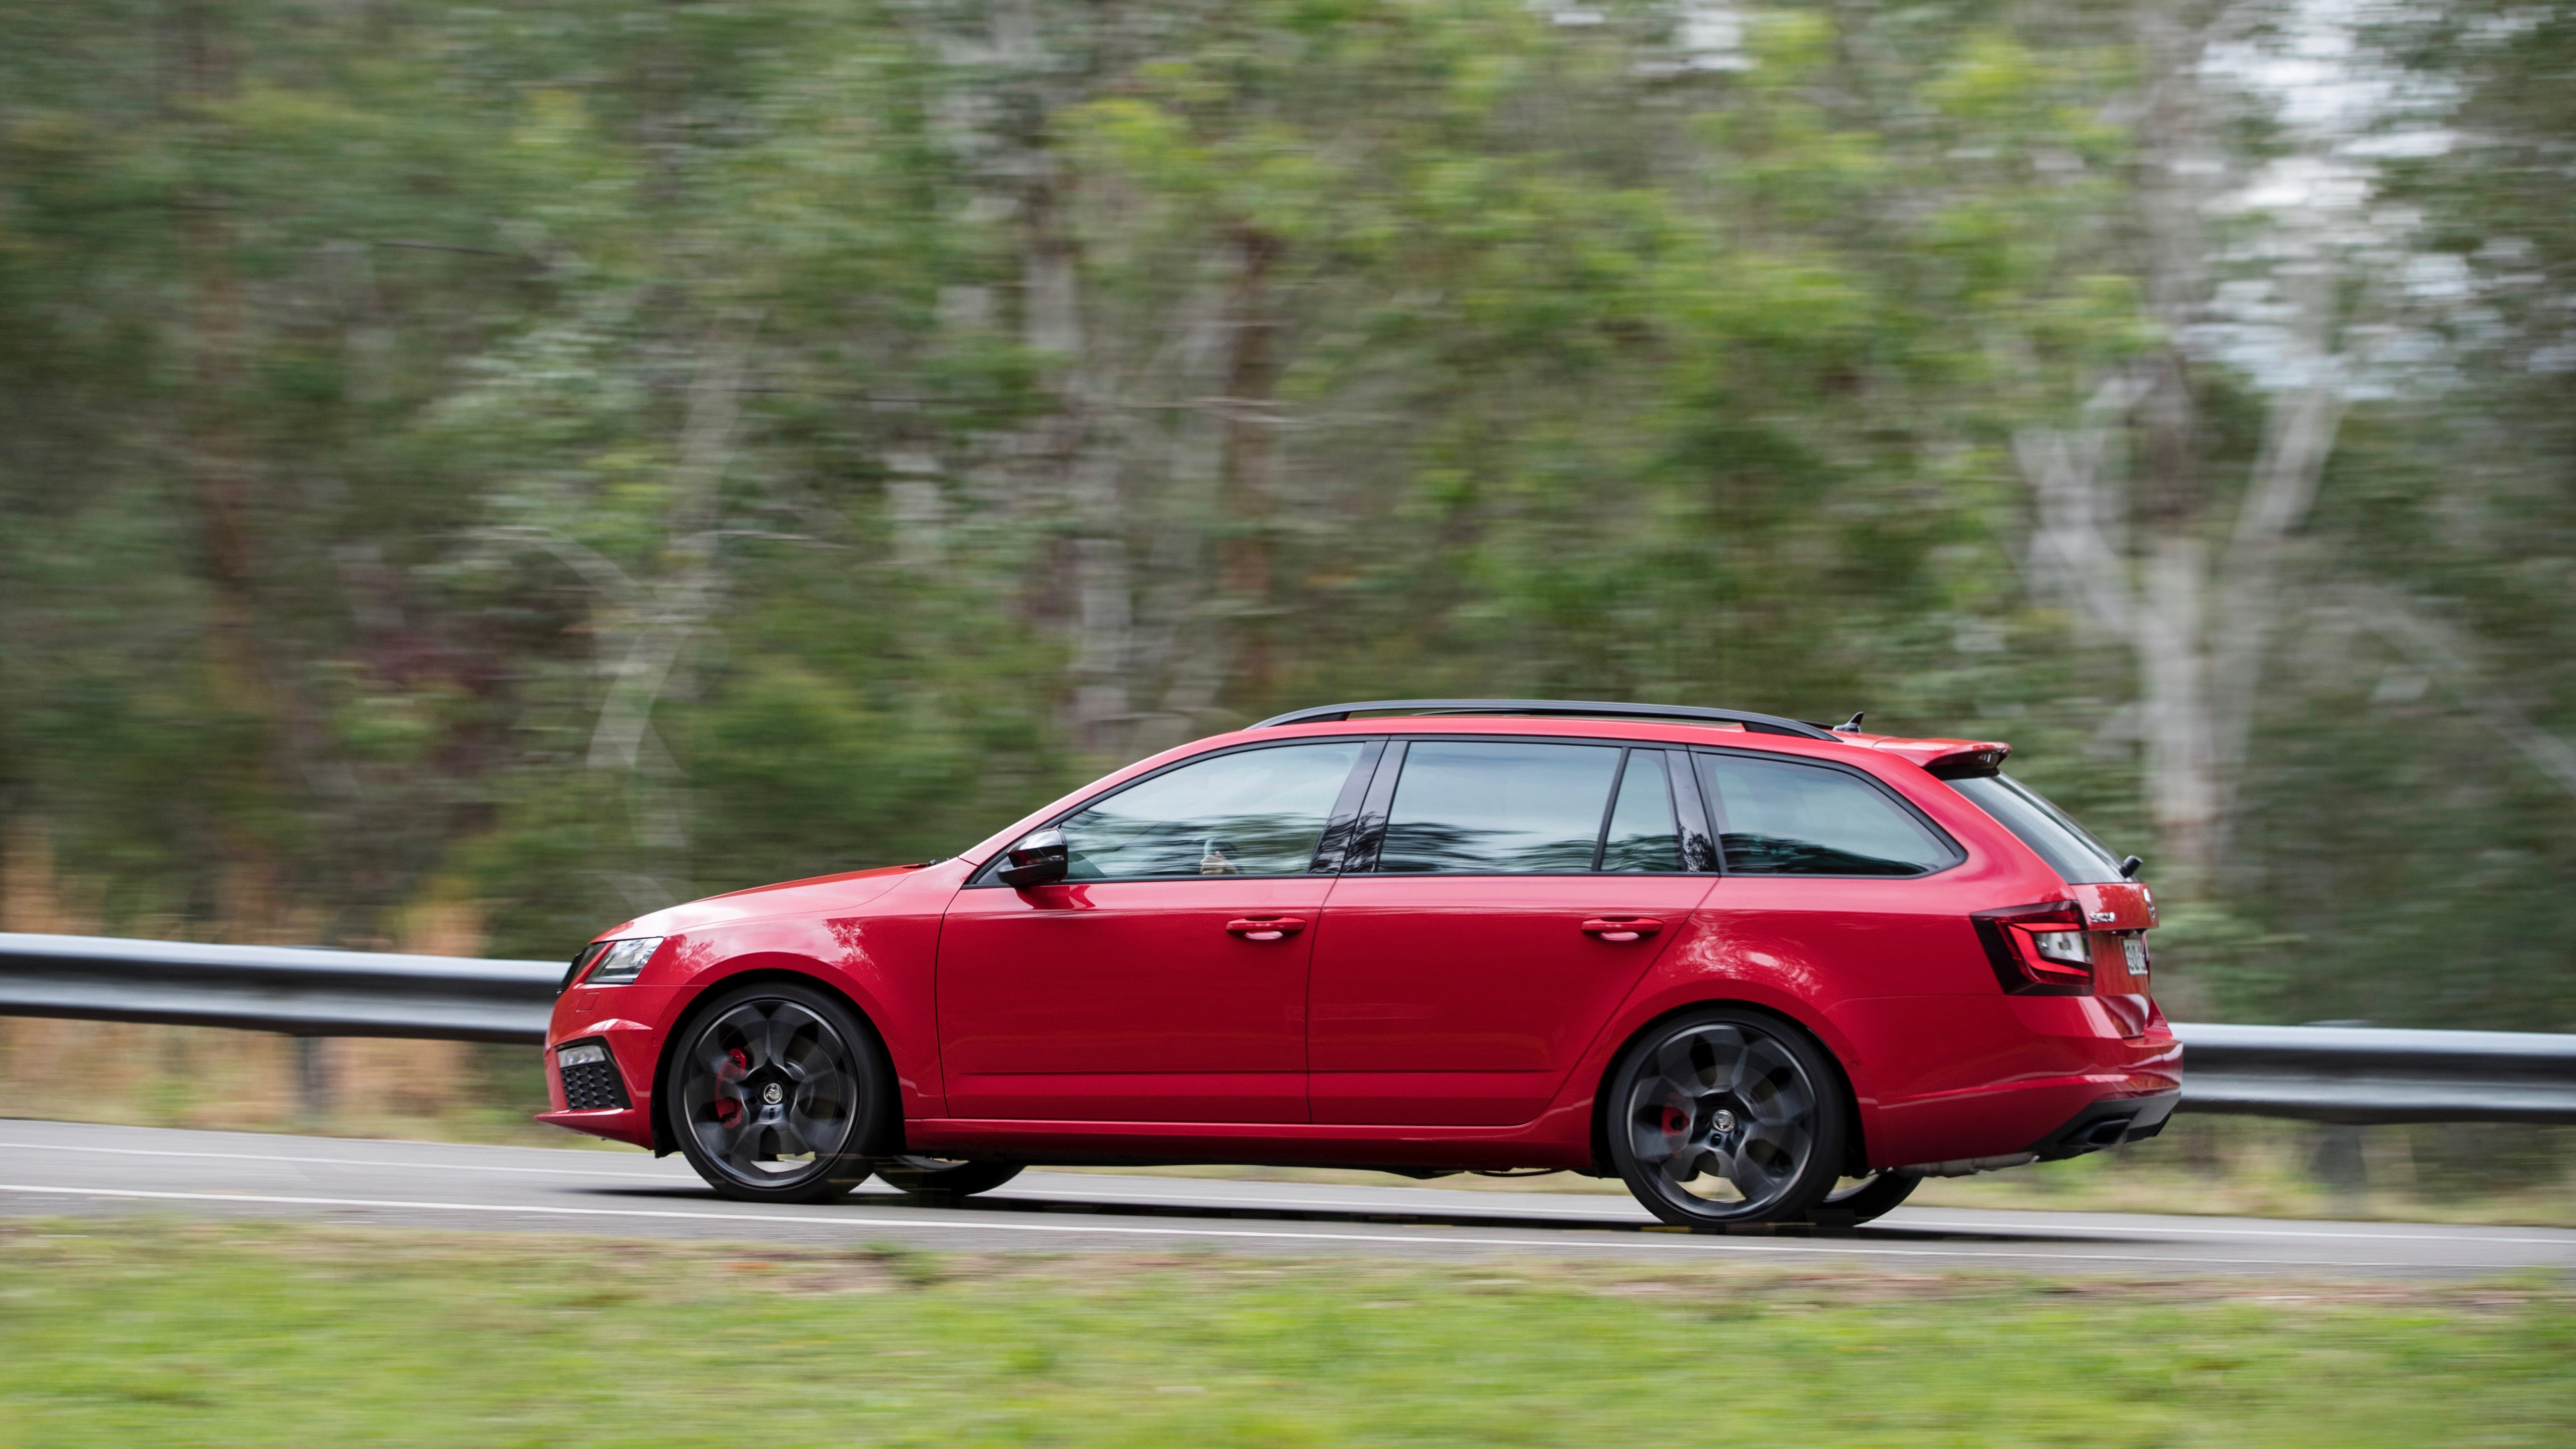 2018 Skoda Octavia RS245 red side